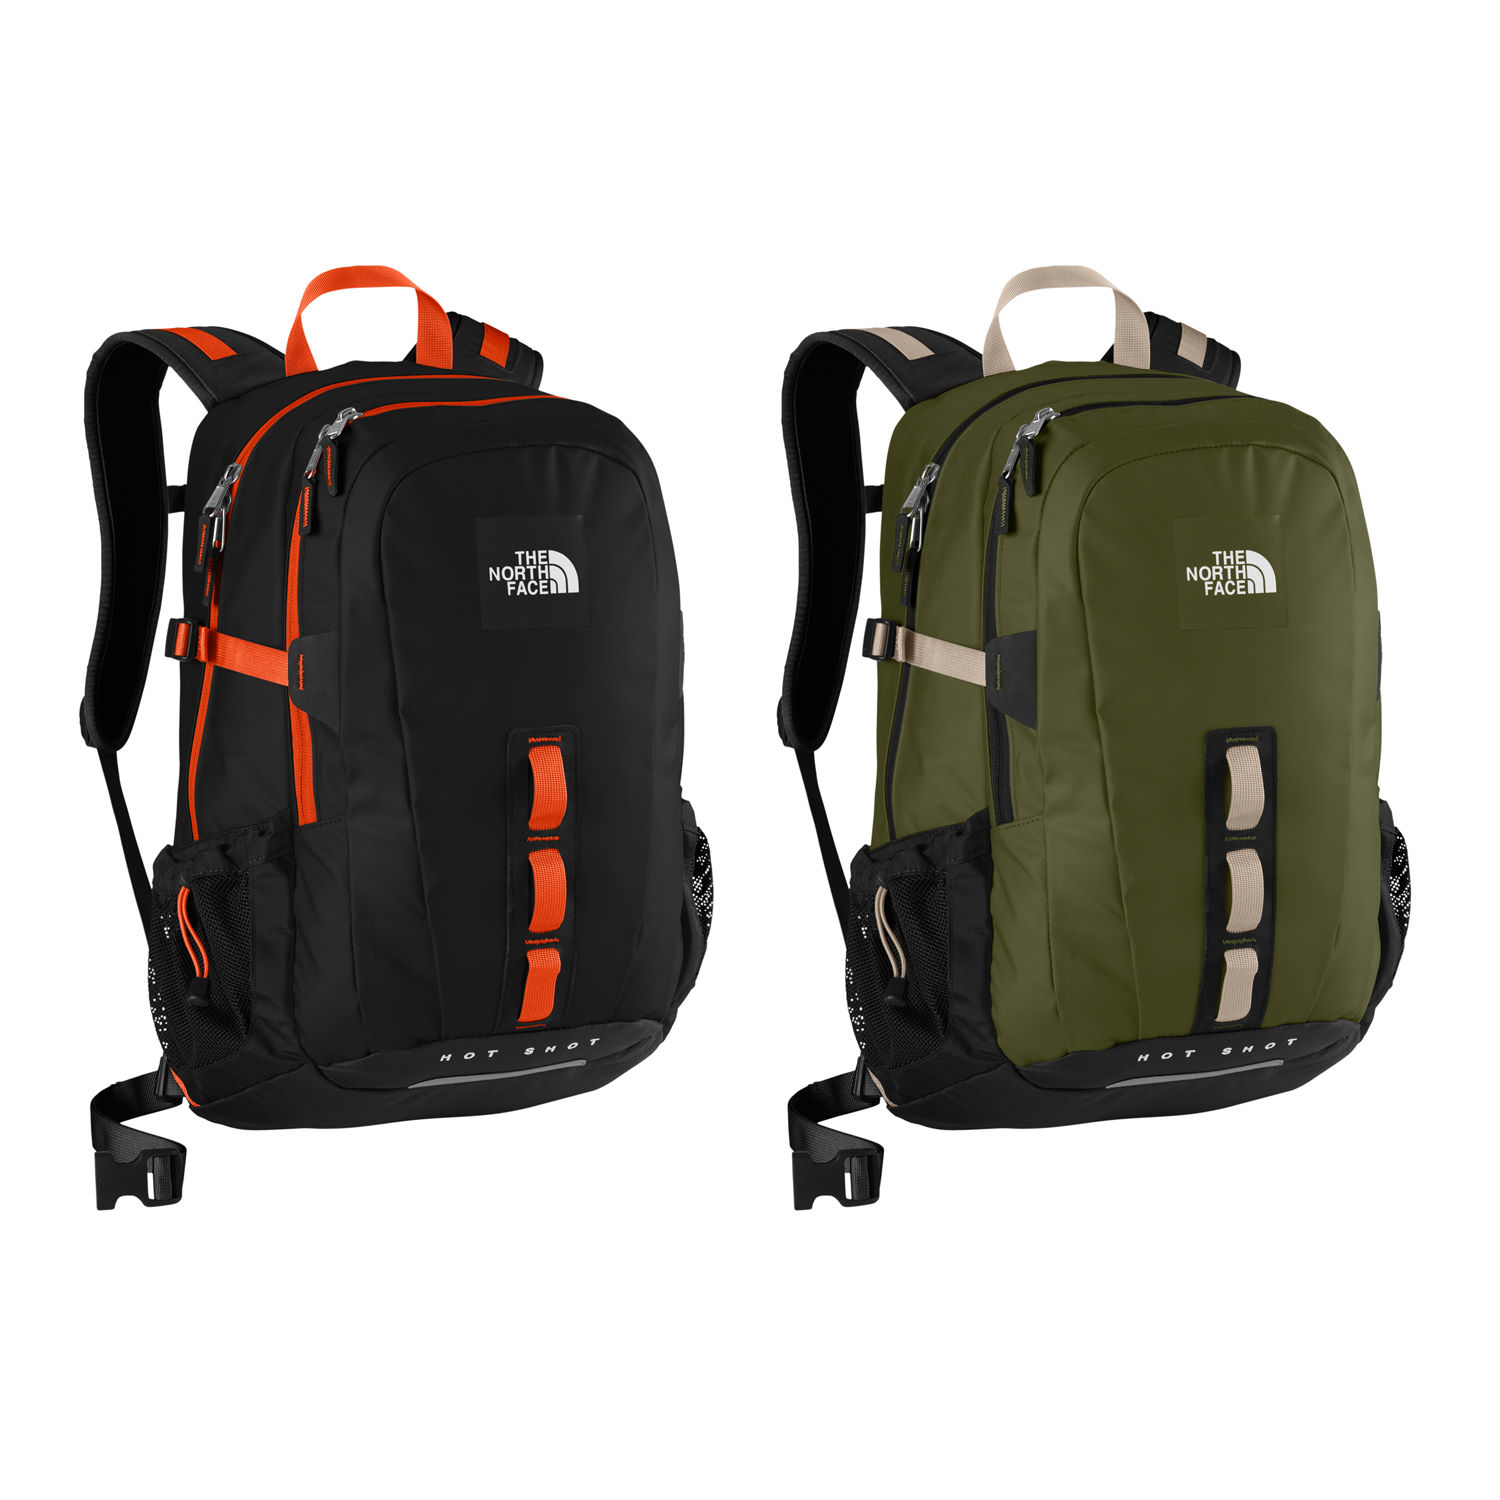 The north face hot shot are